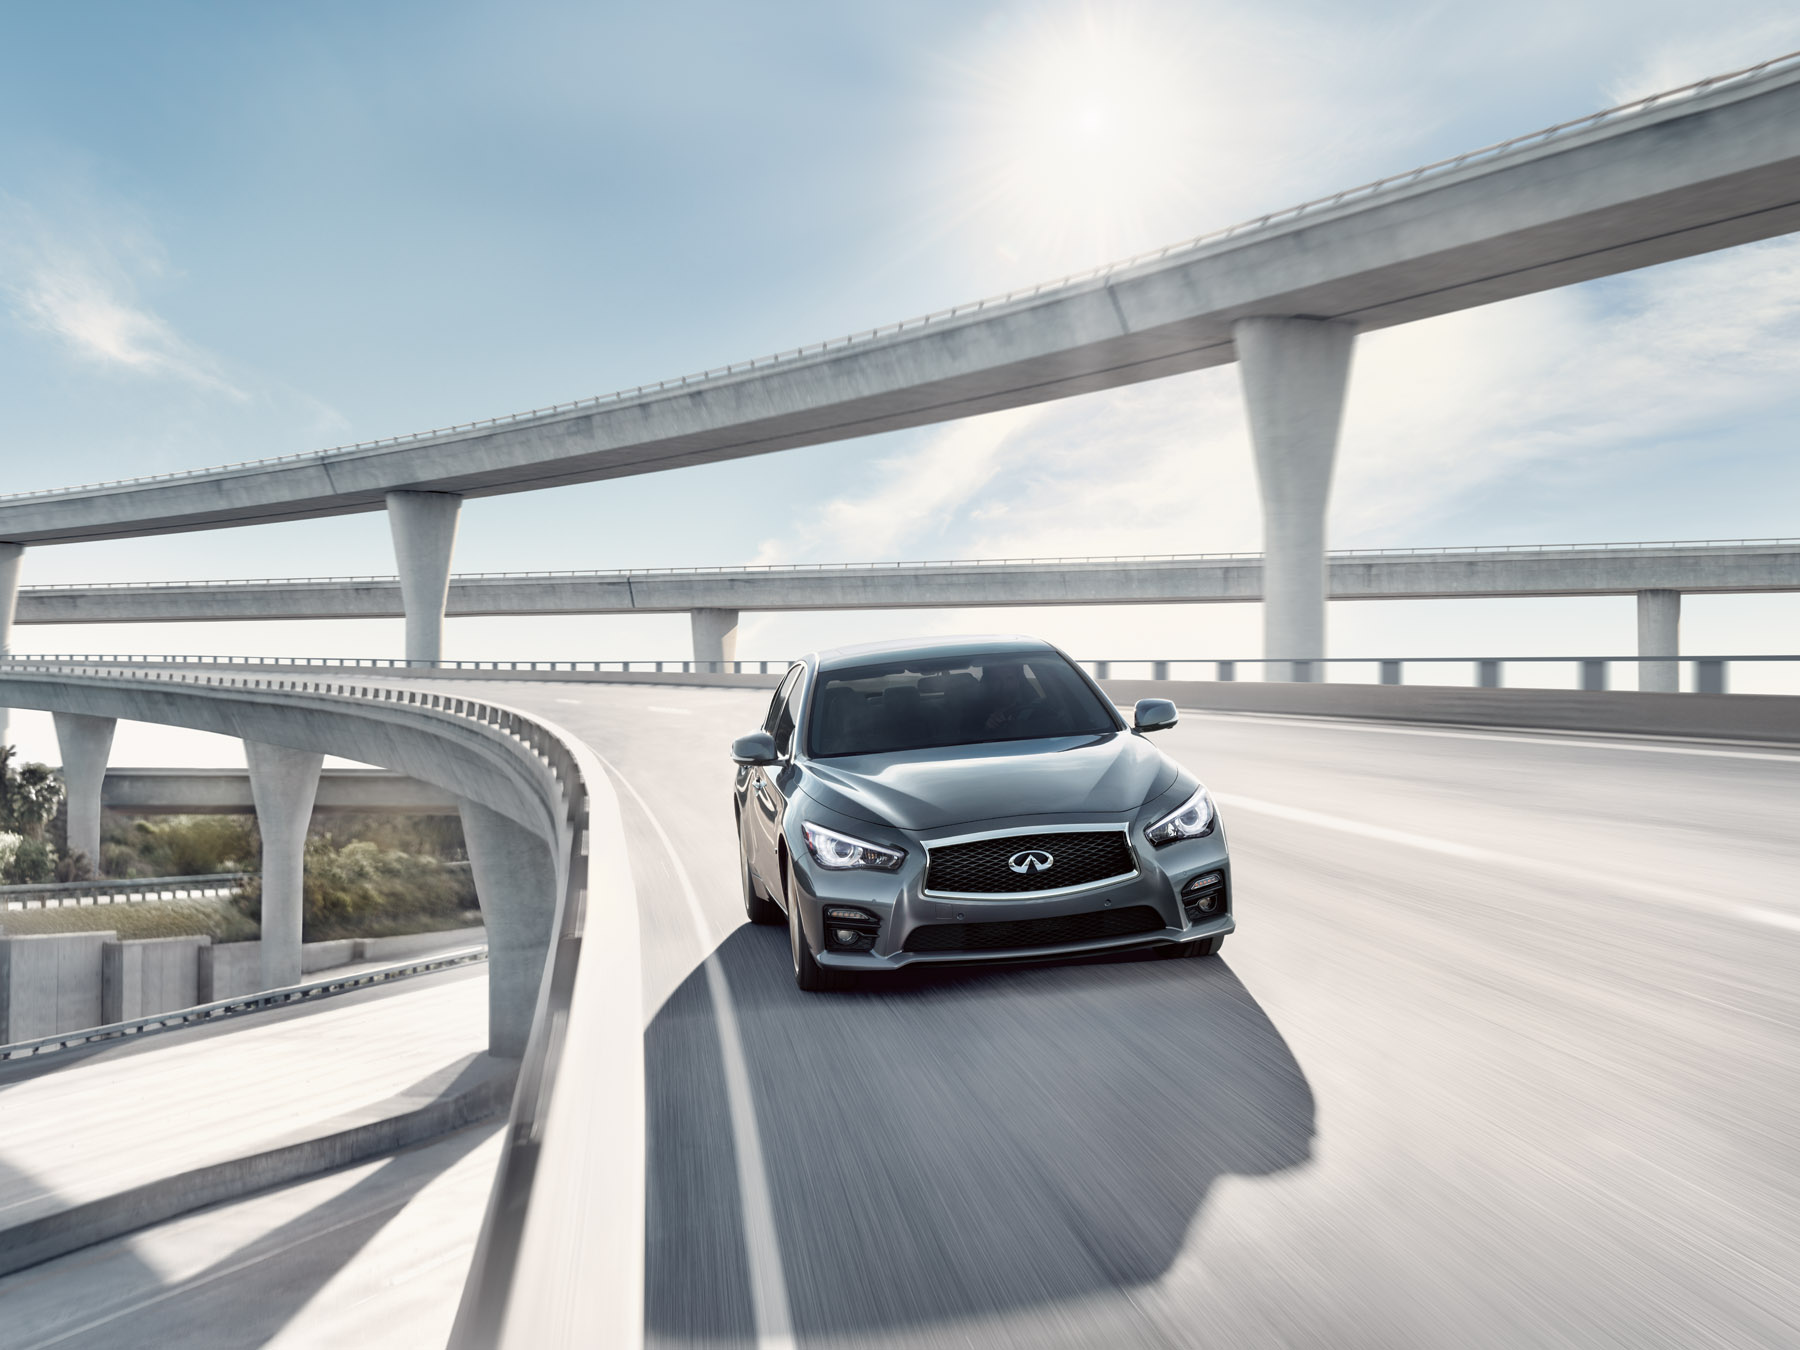 Grey Infiniti Q50 driving on the highway